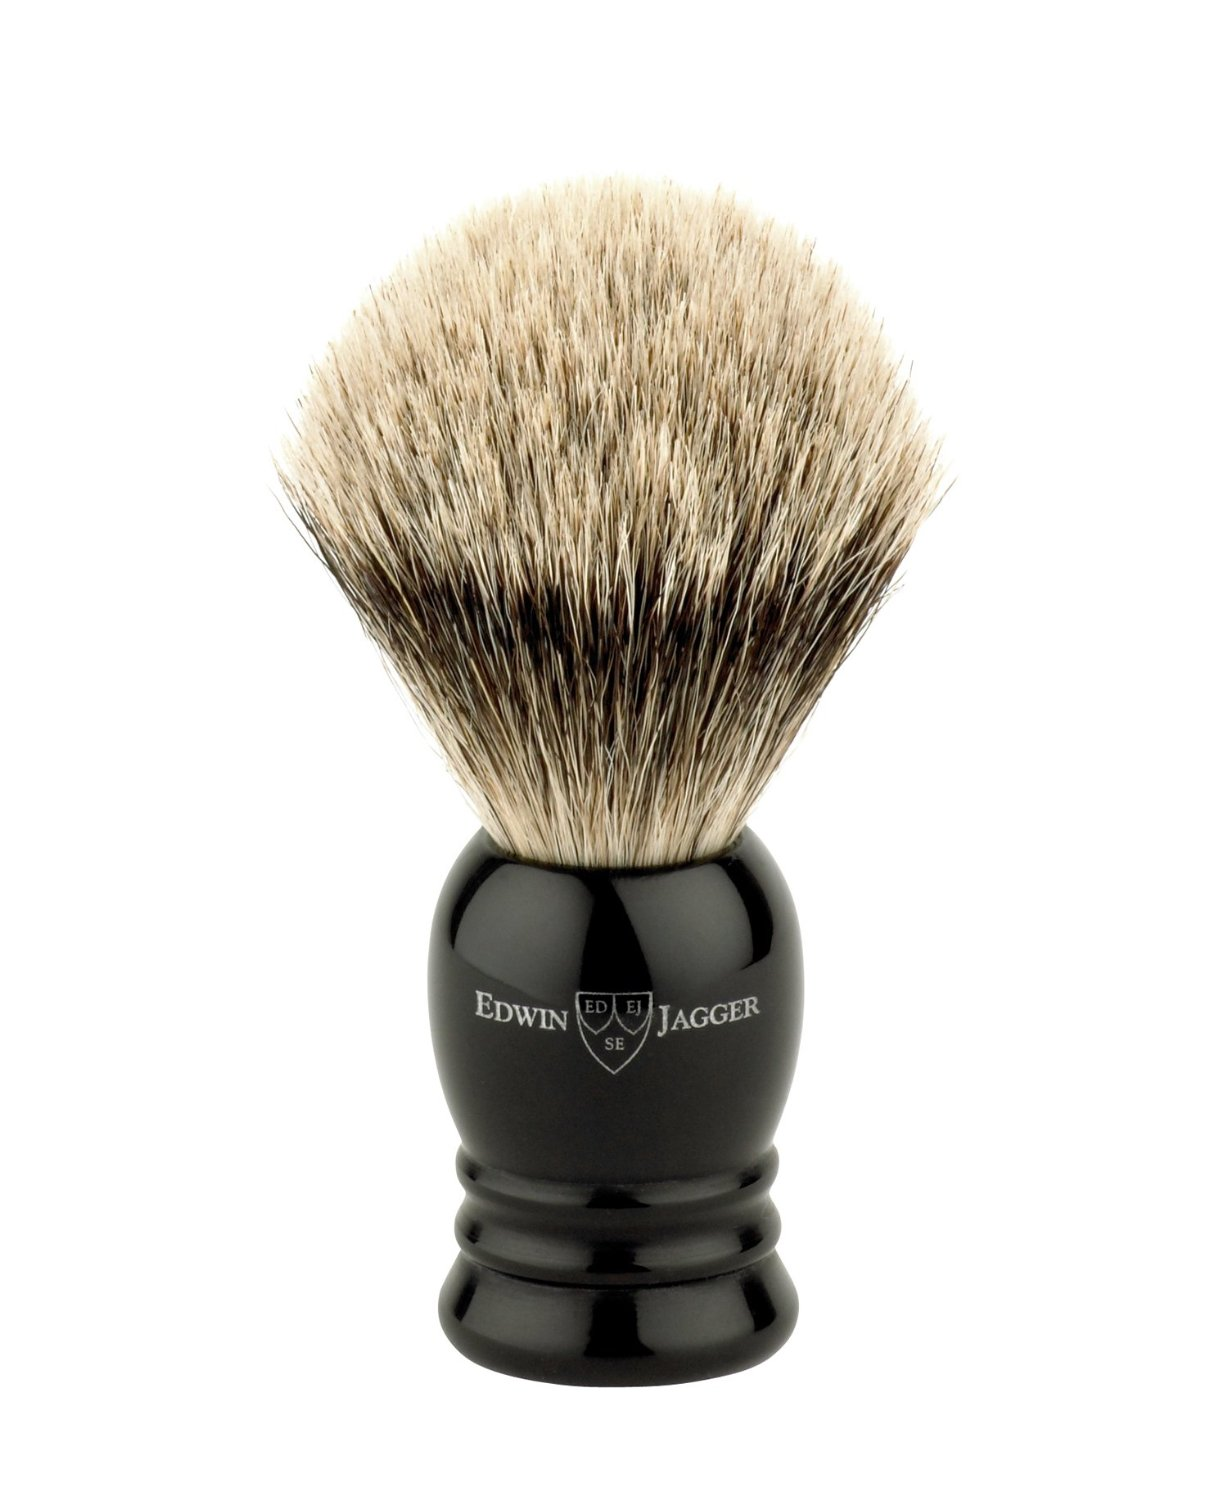 Edwin Jagger Badger Shaving Brush